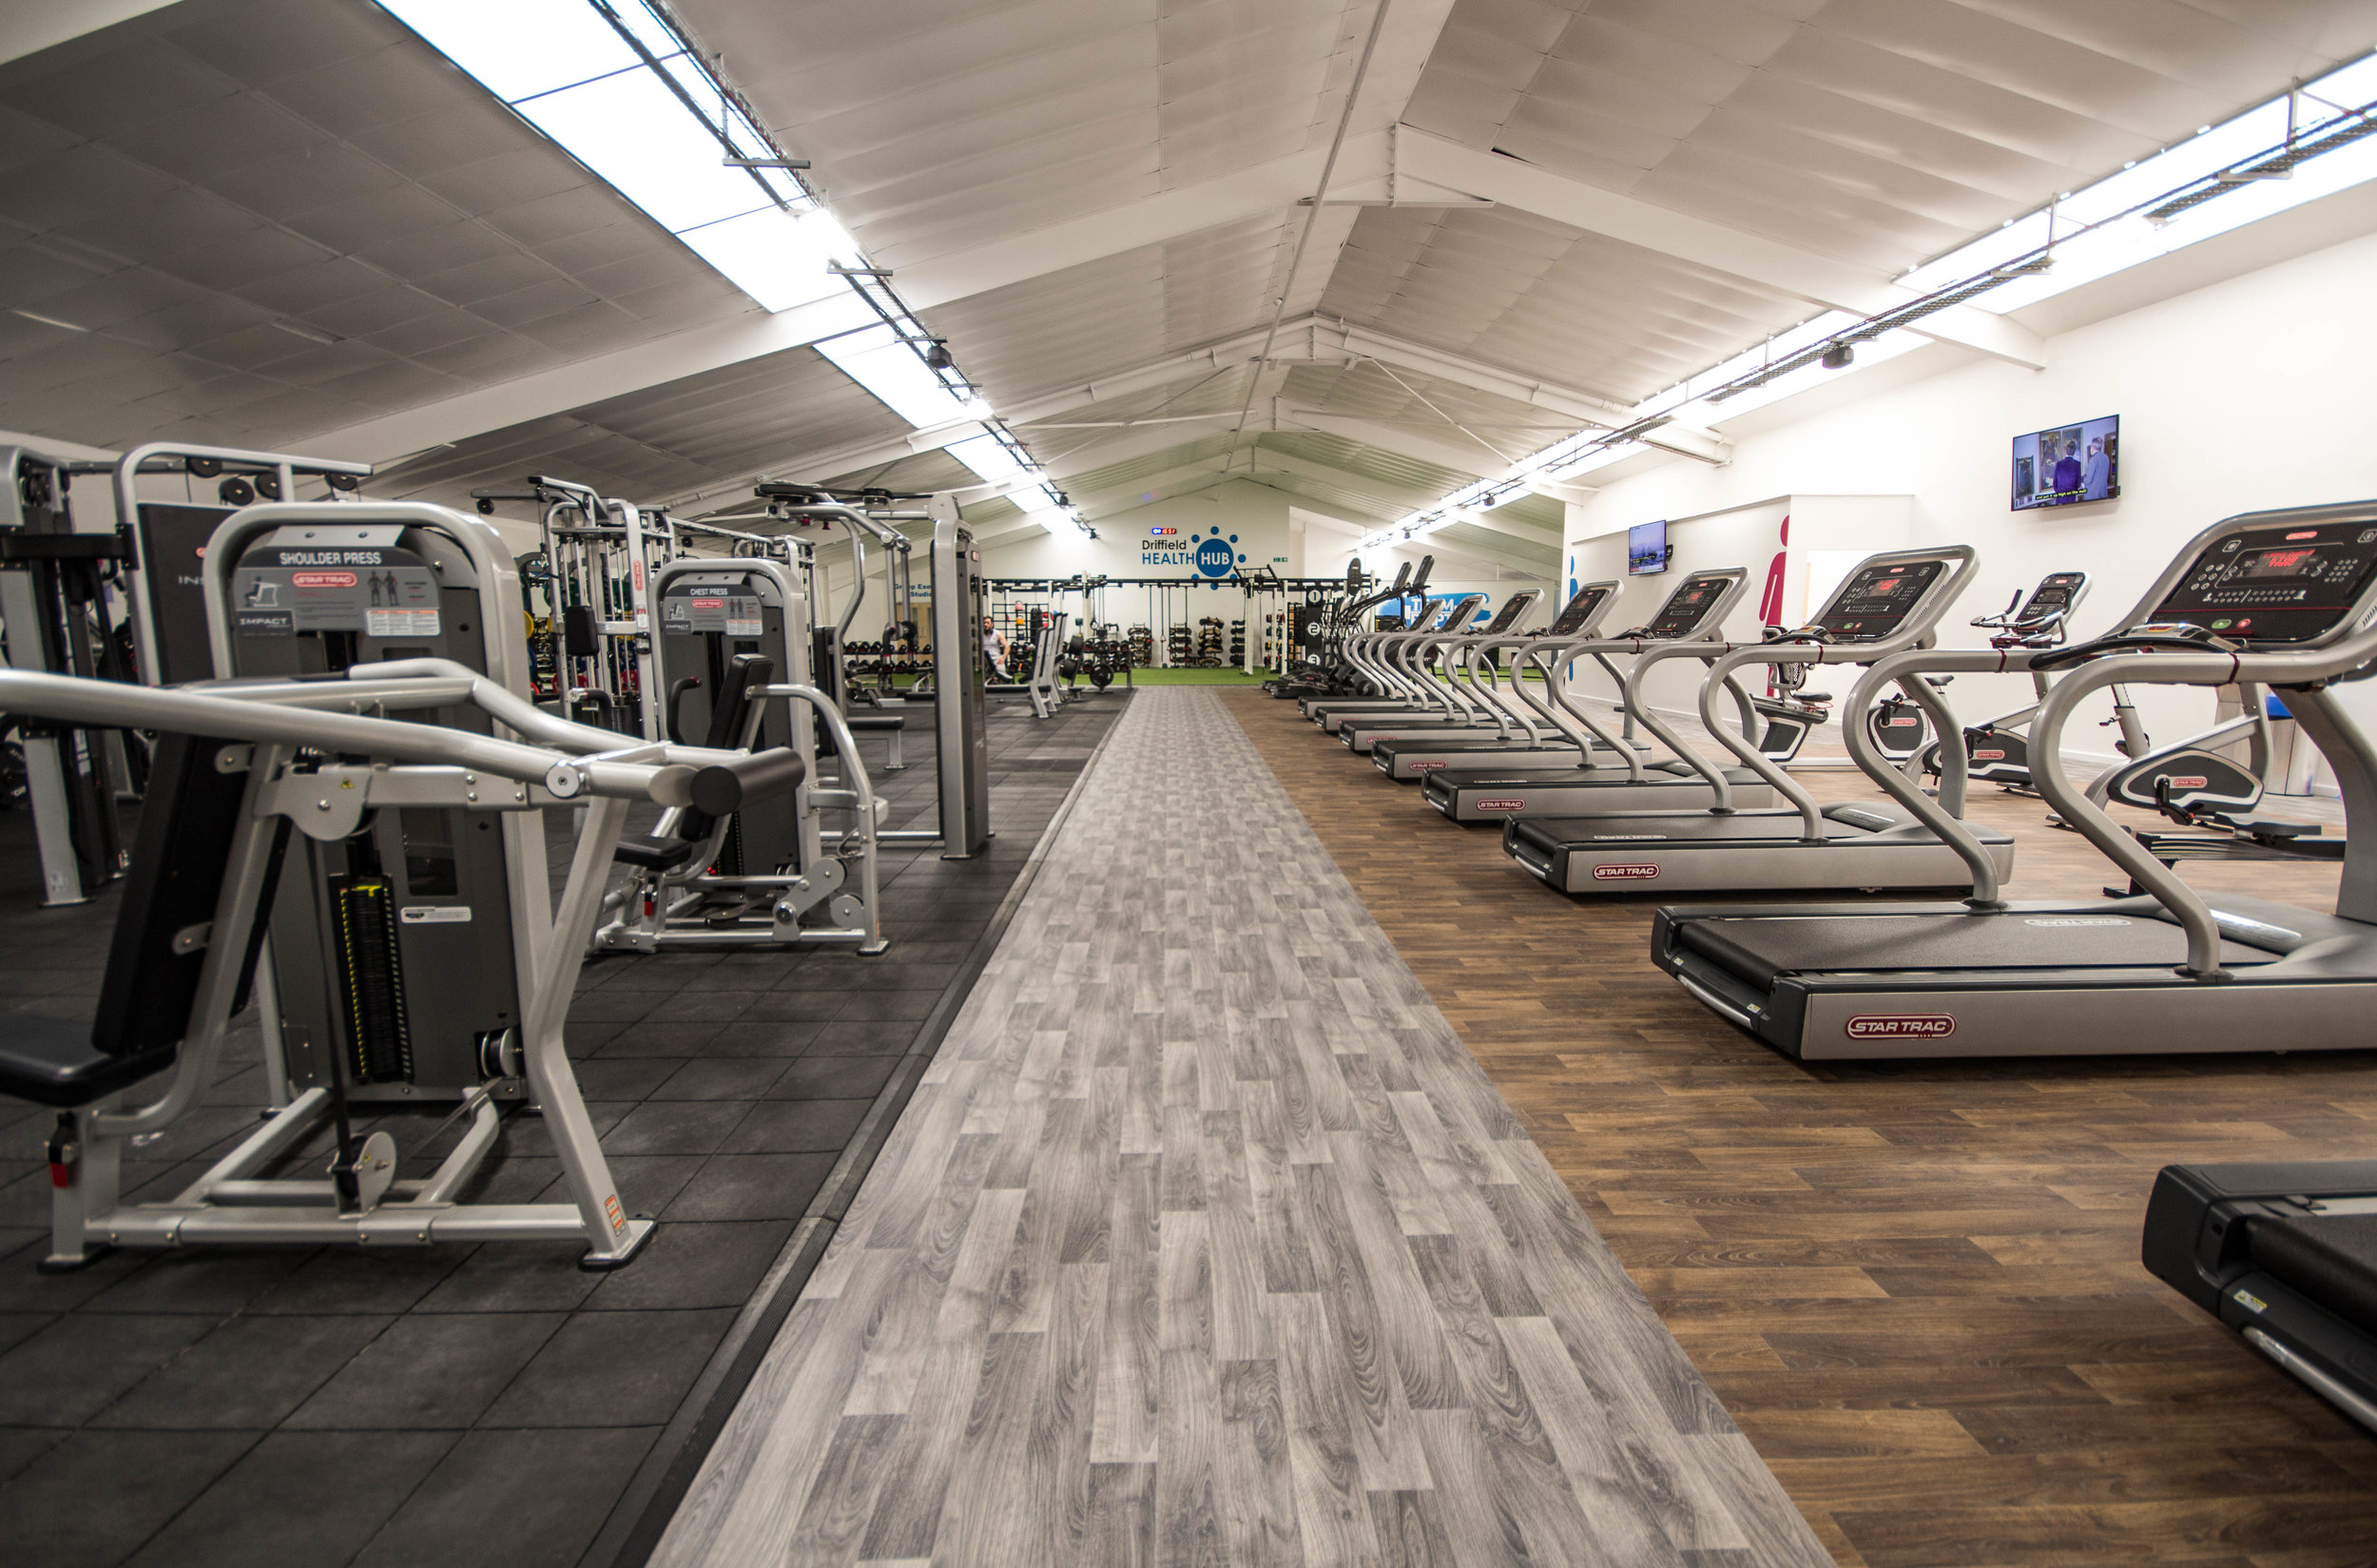 State Of The Art Gym -